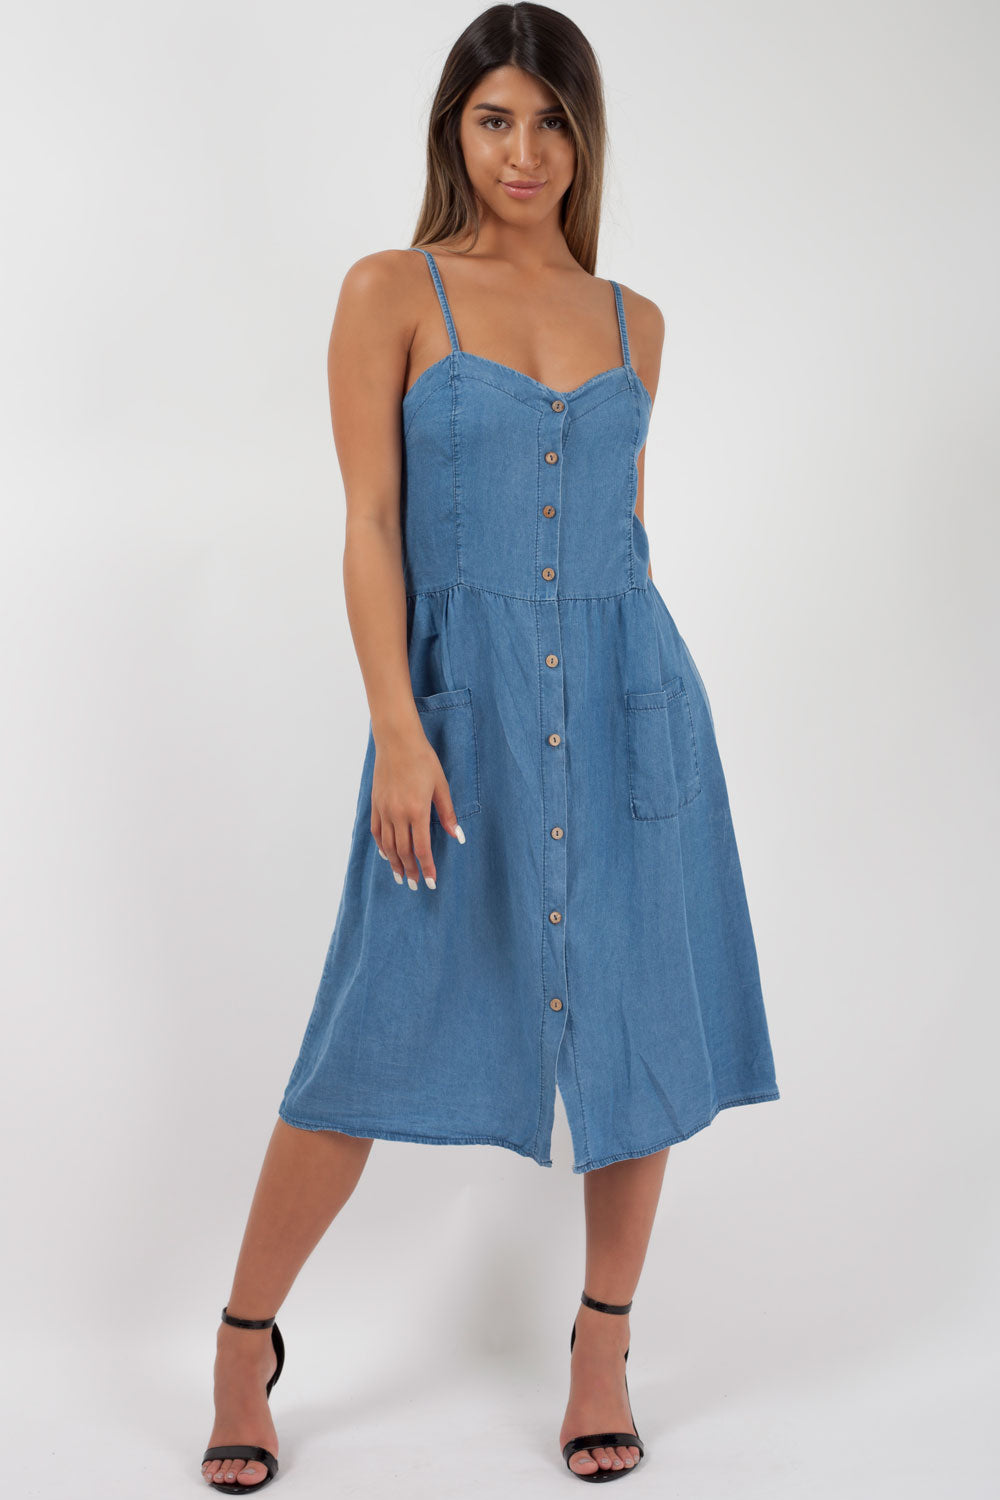 denim skater dress styledup fashion